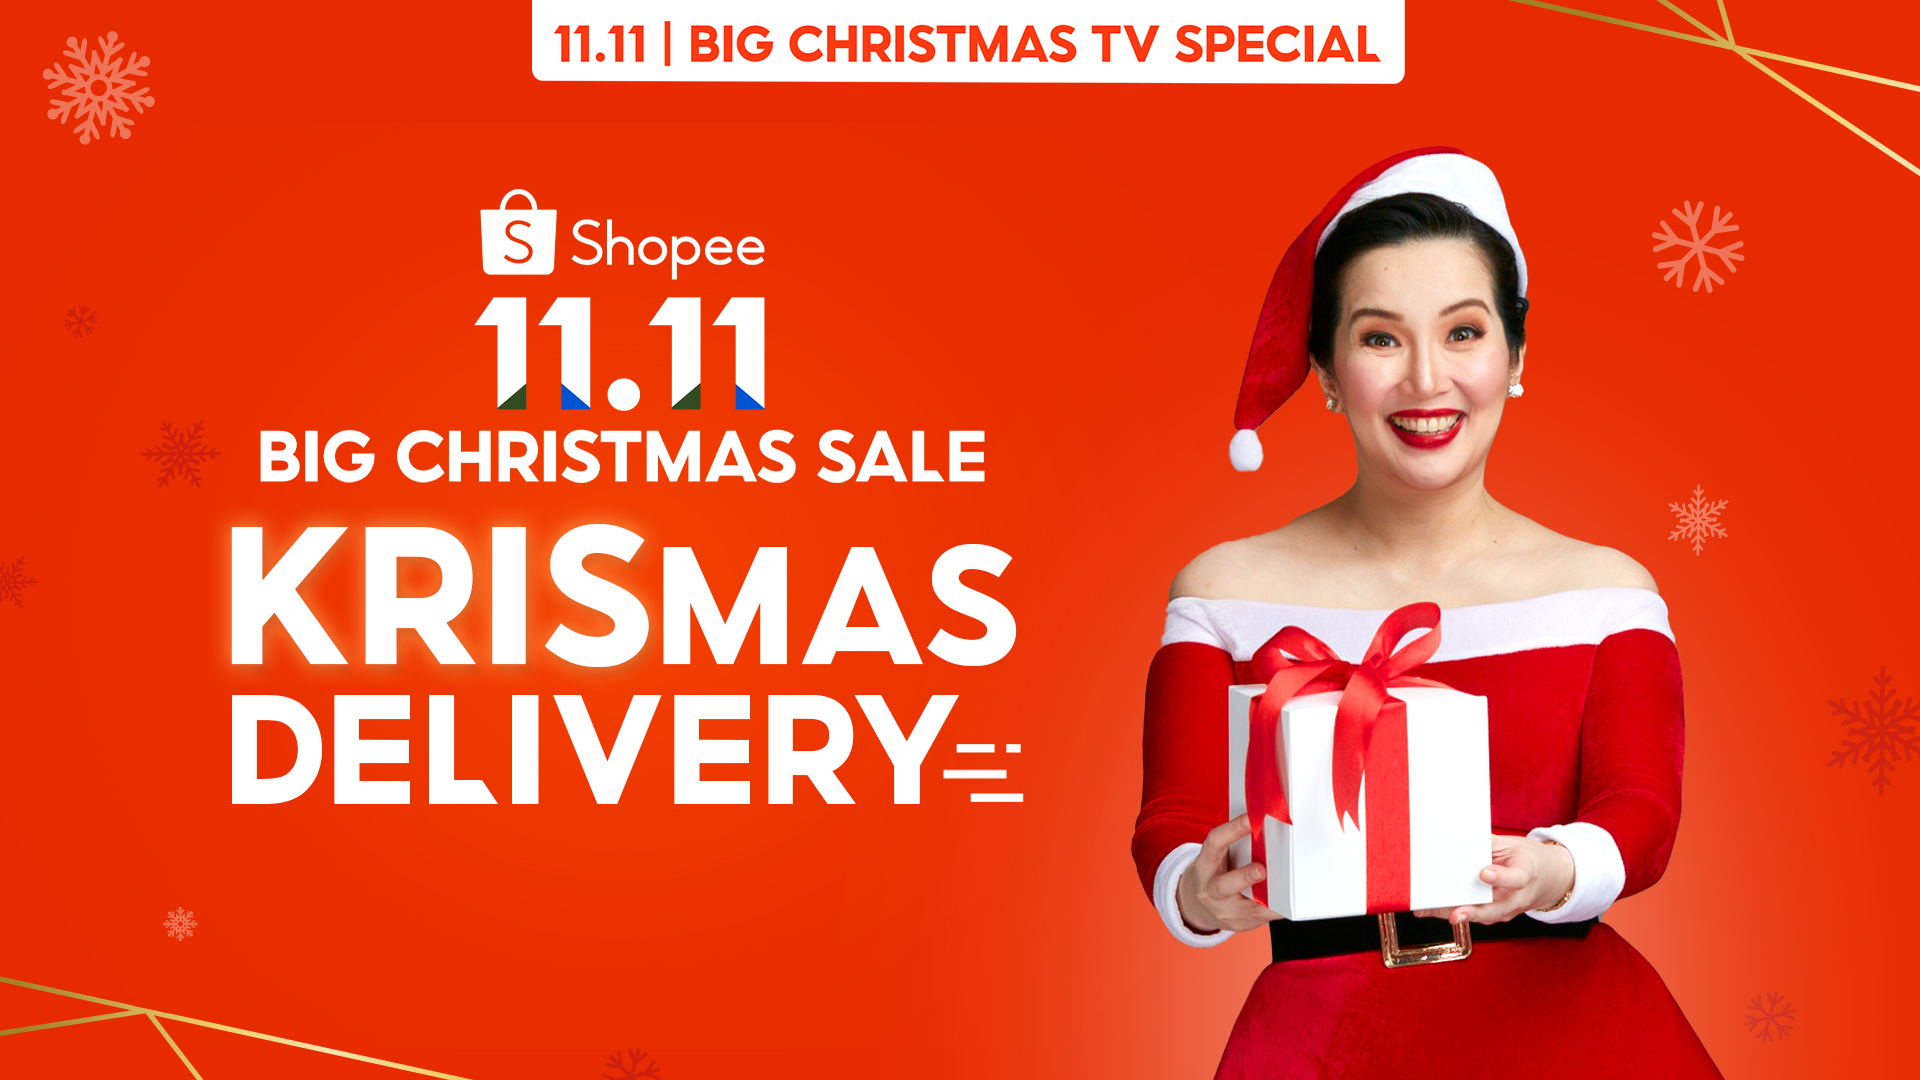 Shopee Brand Ambassador Kris Aquino delivered joys and surprise gifts to three families this Christmas Special Shopee Deliveries